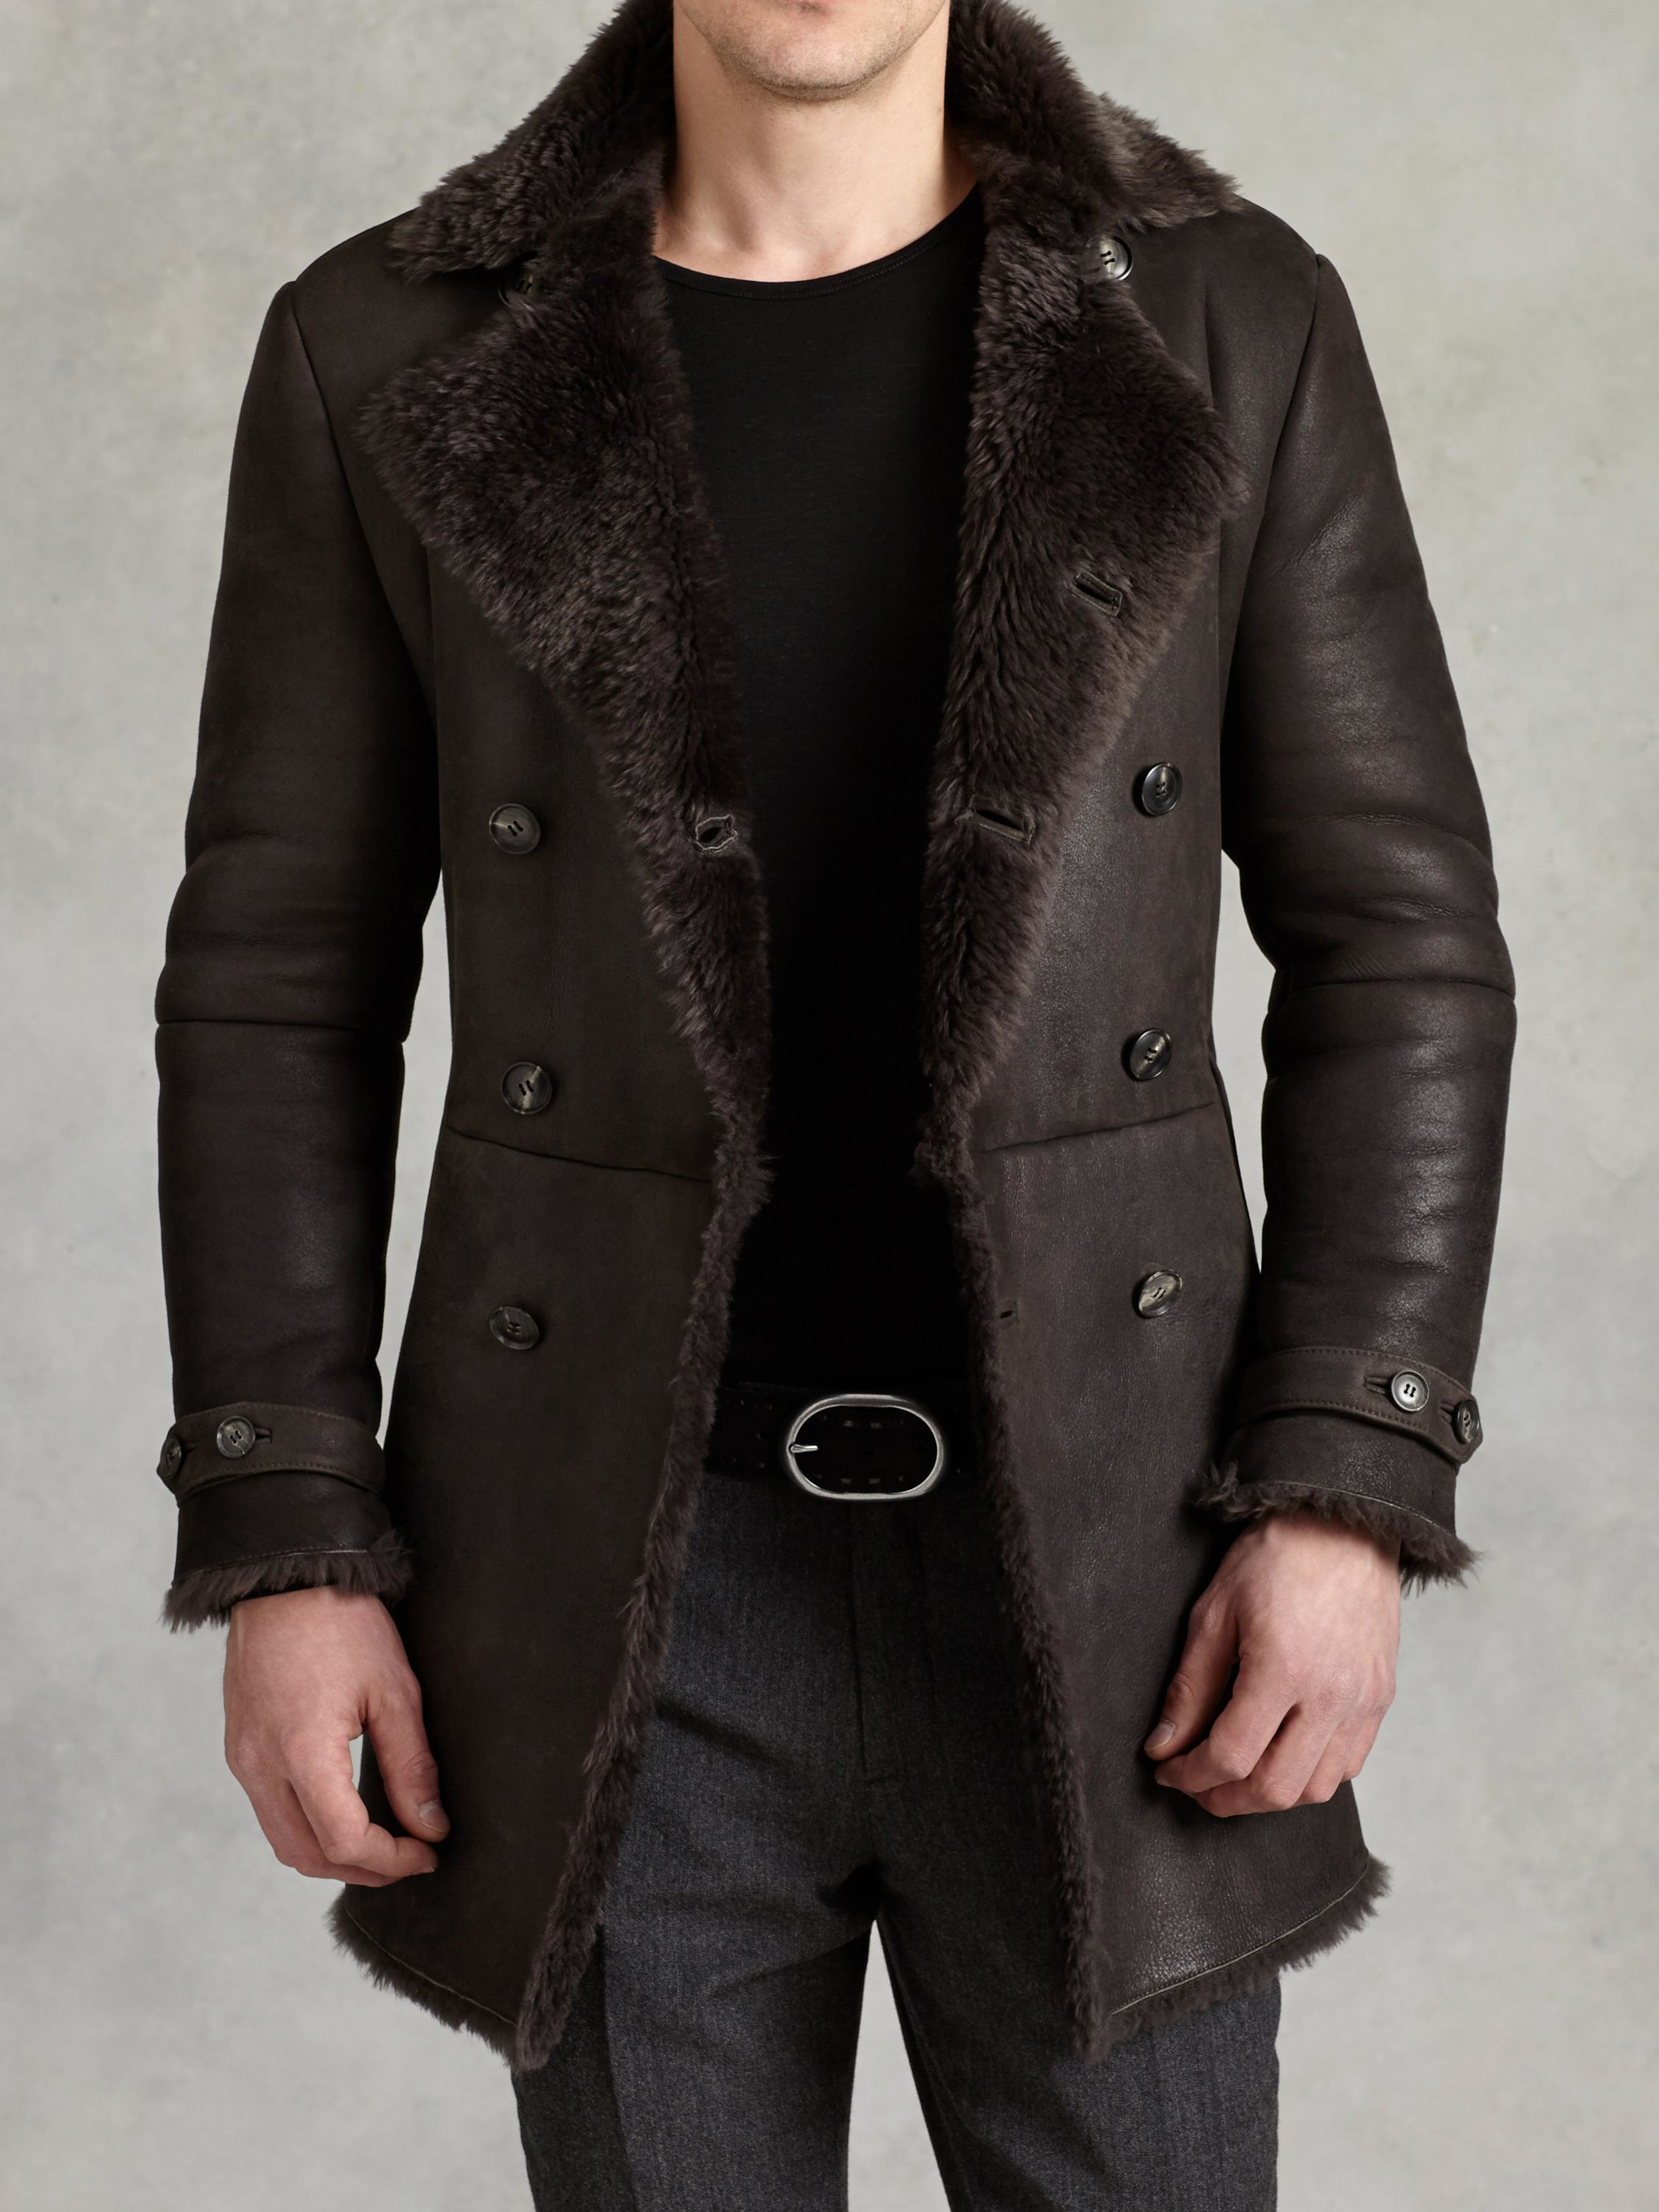 John varvatos Double Breasted Shearling Coat in Brown for Men | Lyst